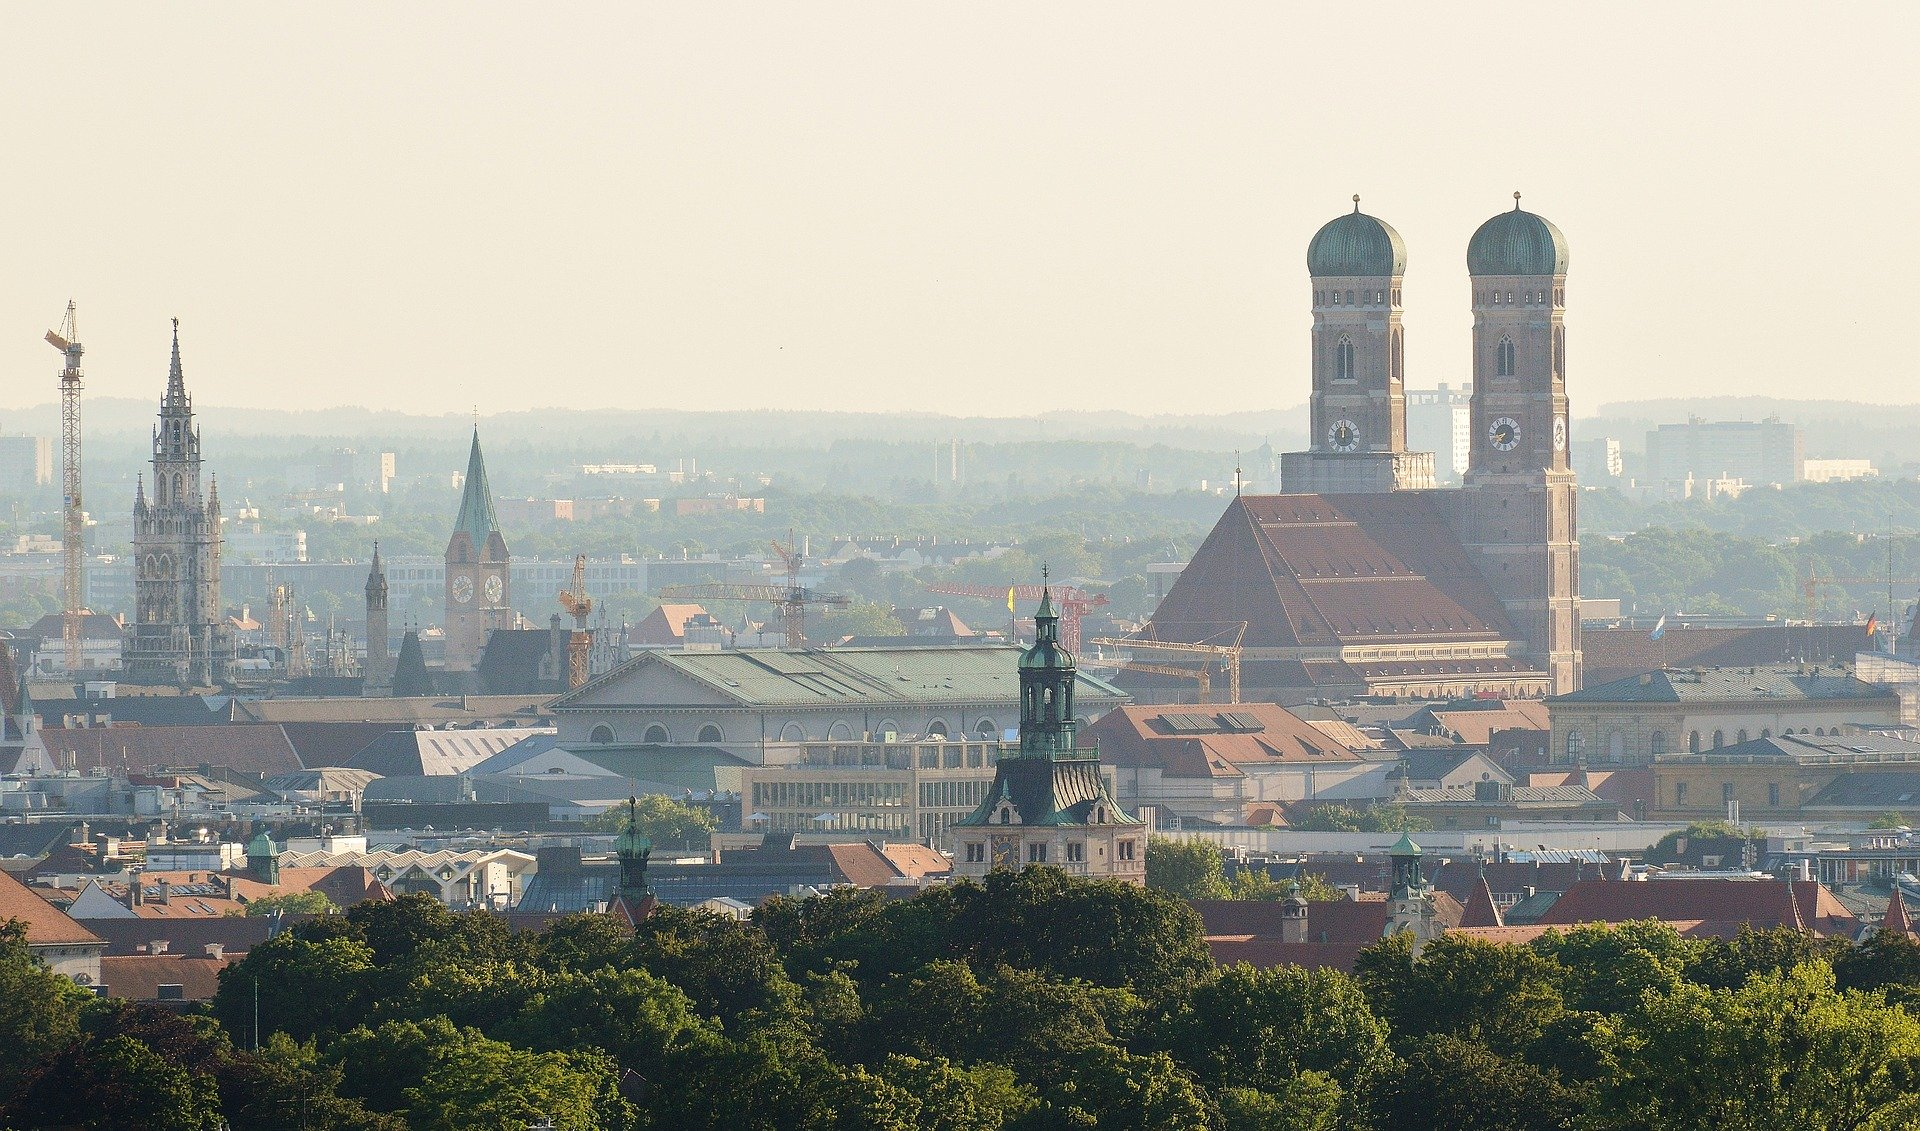 Find a real estate agent in Munich: Top Real Estate Agent Tips